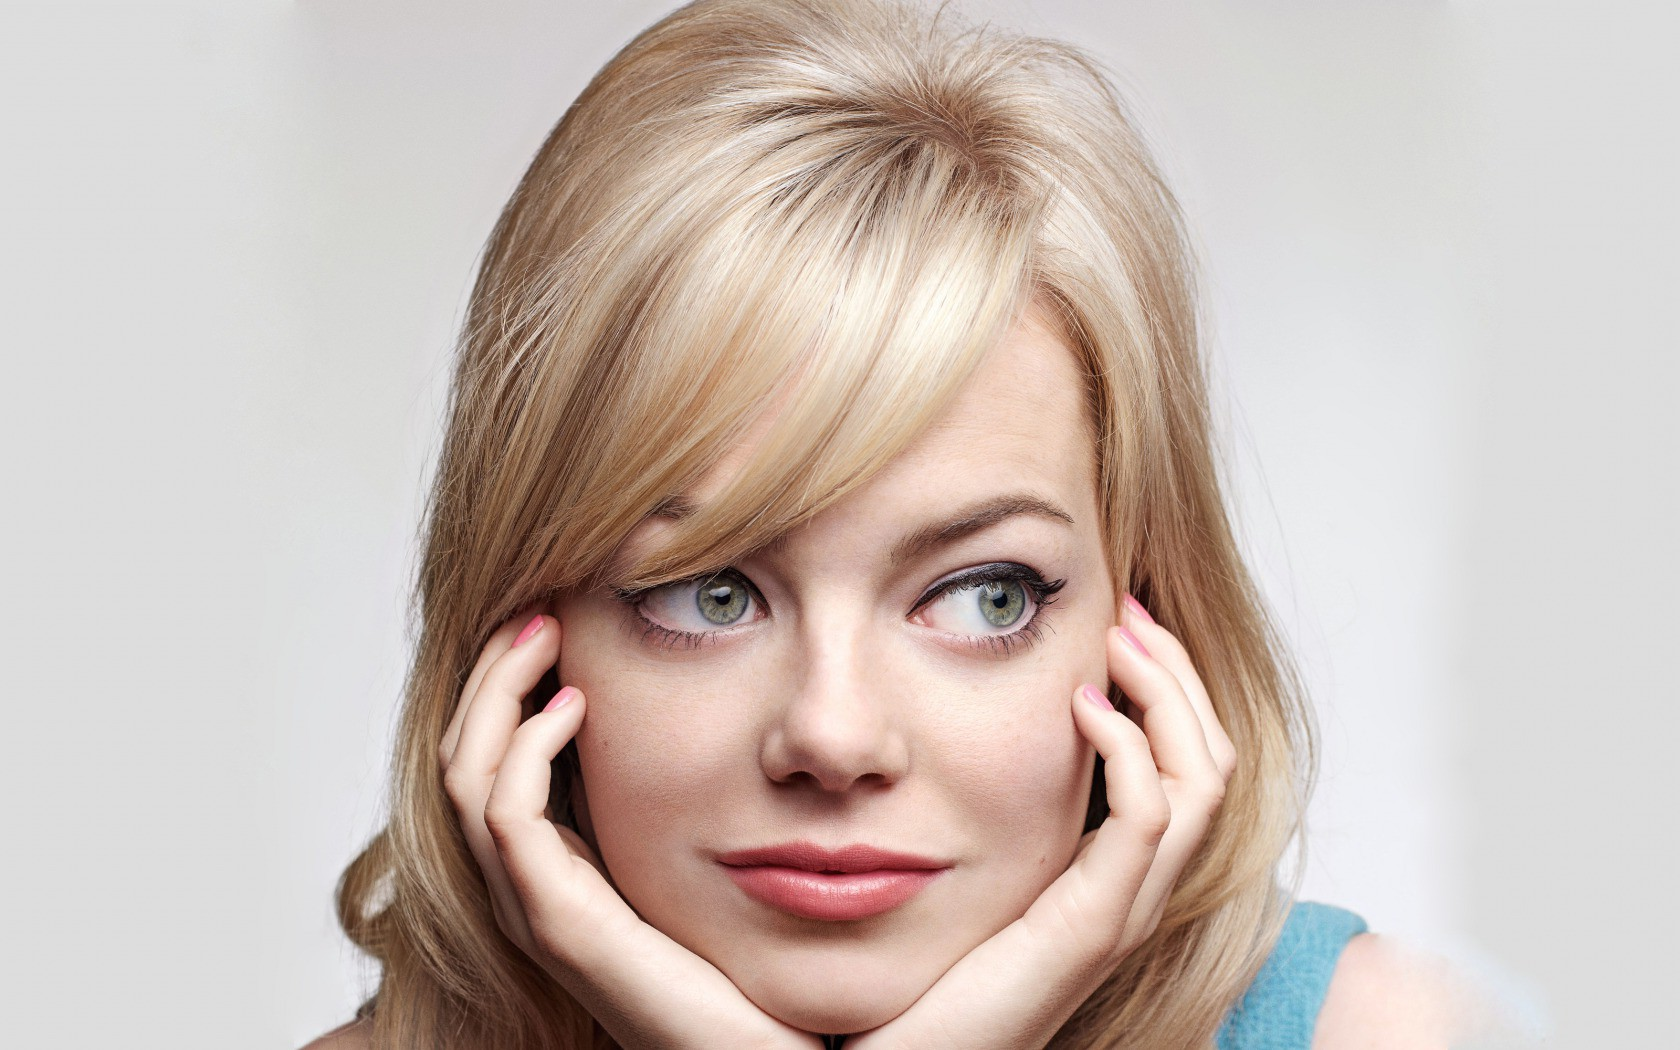 Amazing Emma Stone Giving Heart Shape Face Pose Still Desktop Background Laptop Free Hd Wallpaper